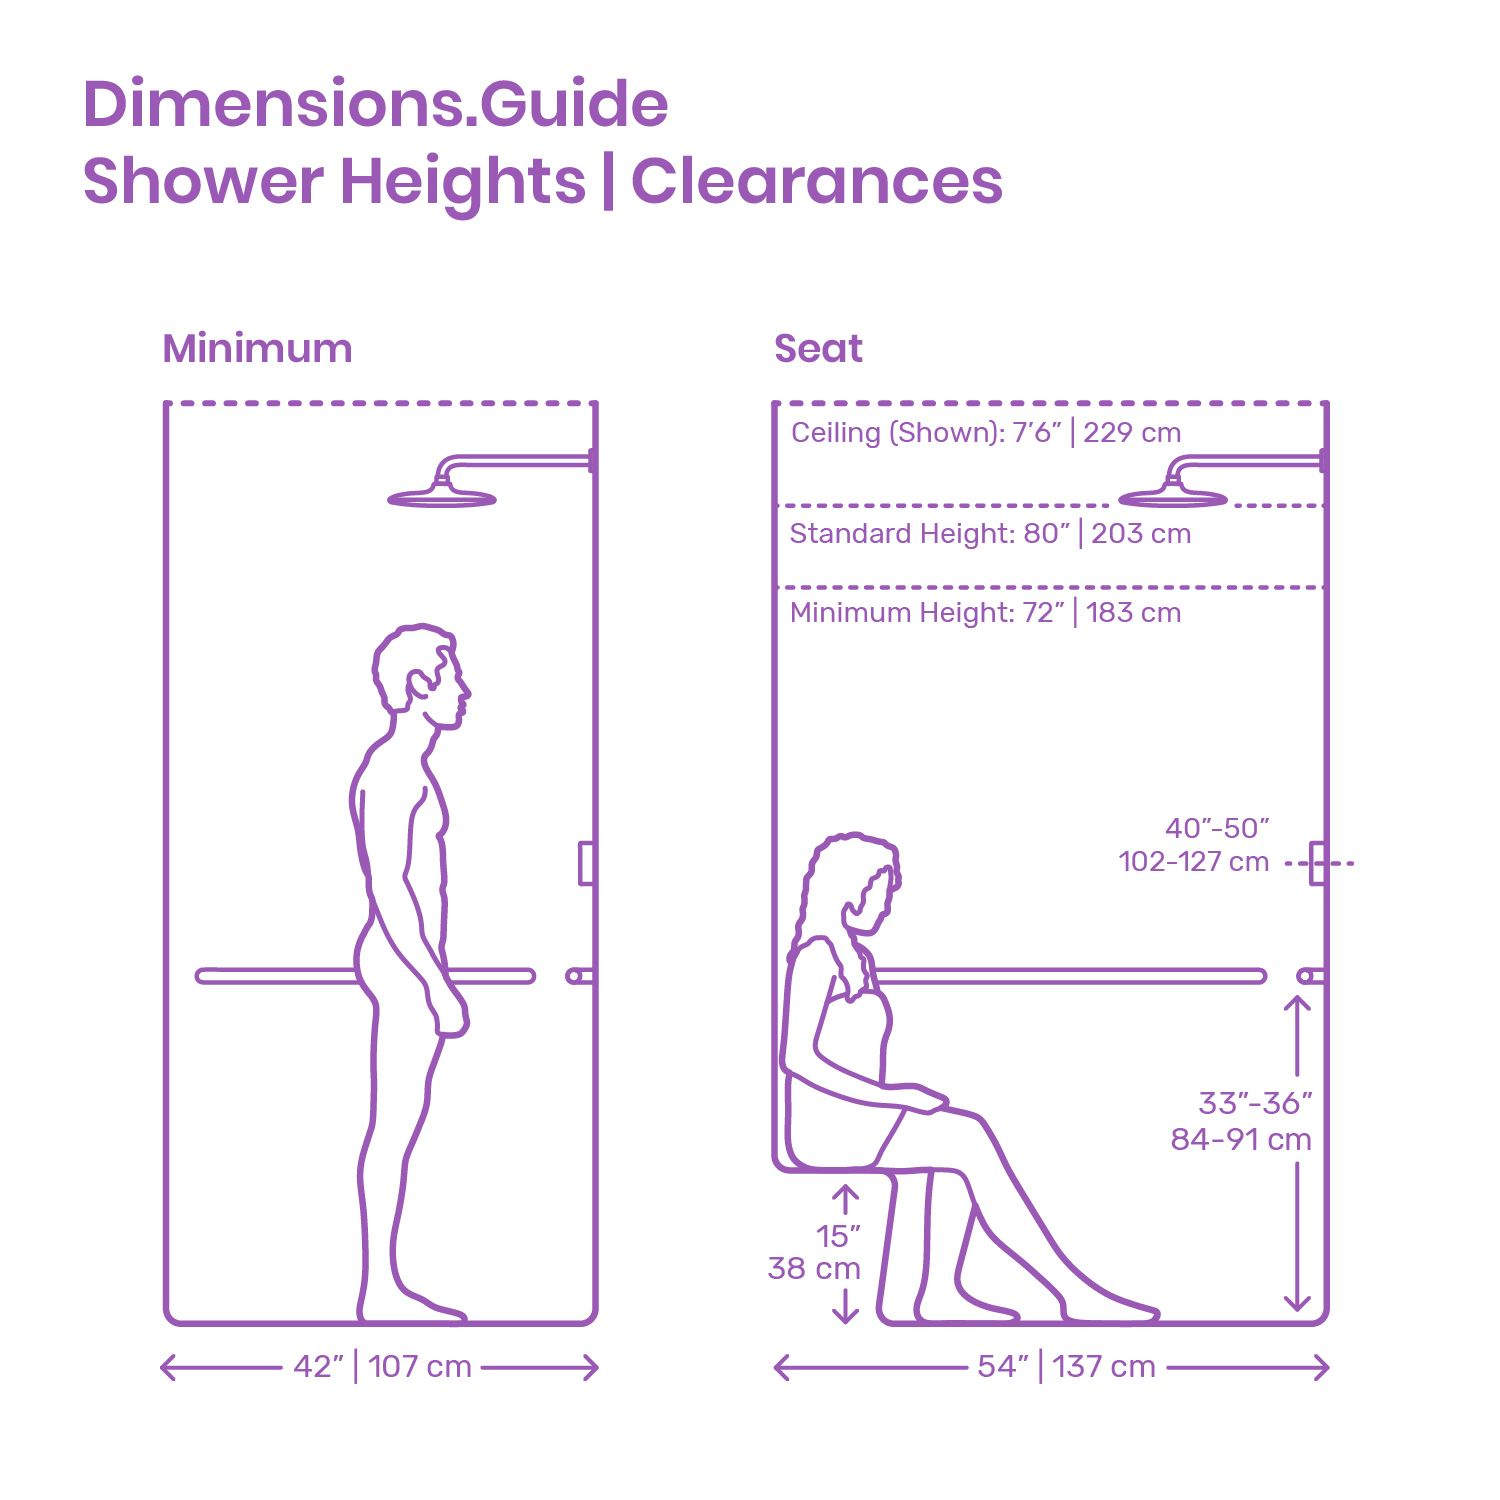 Shower Heights | Clearances